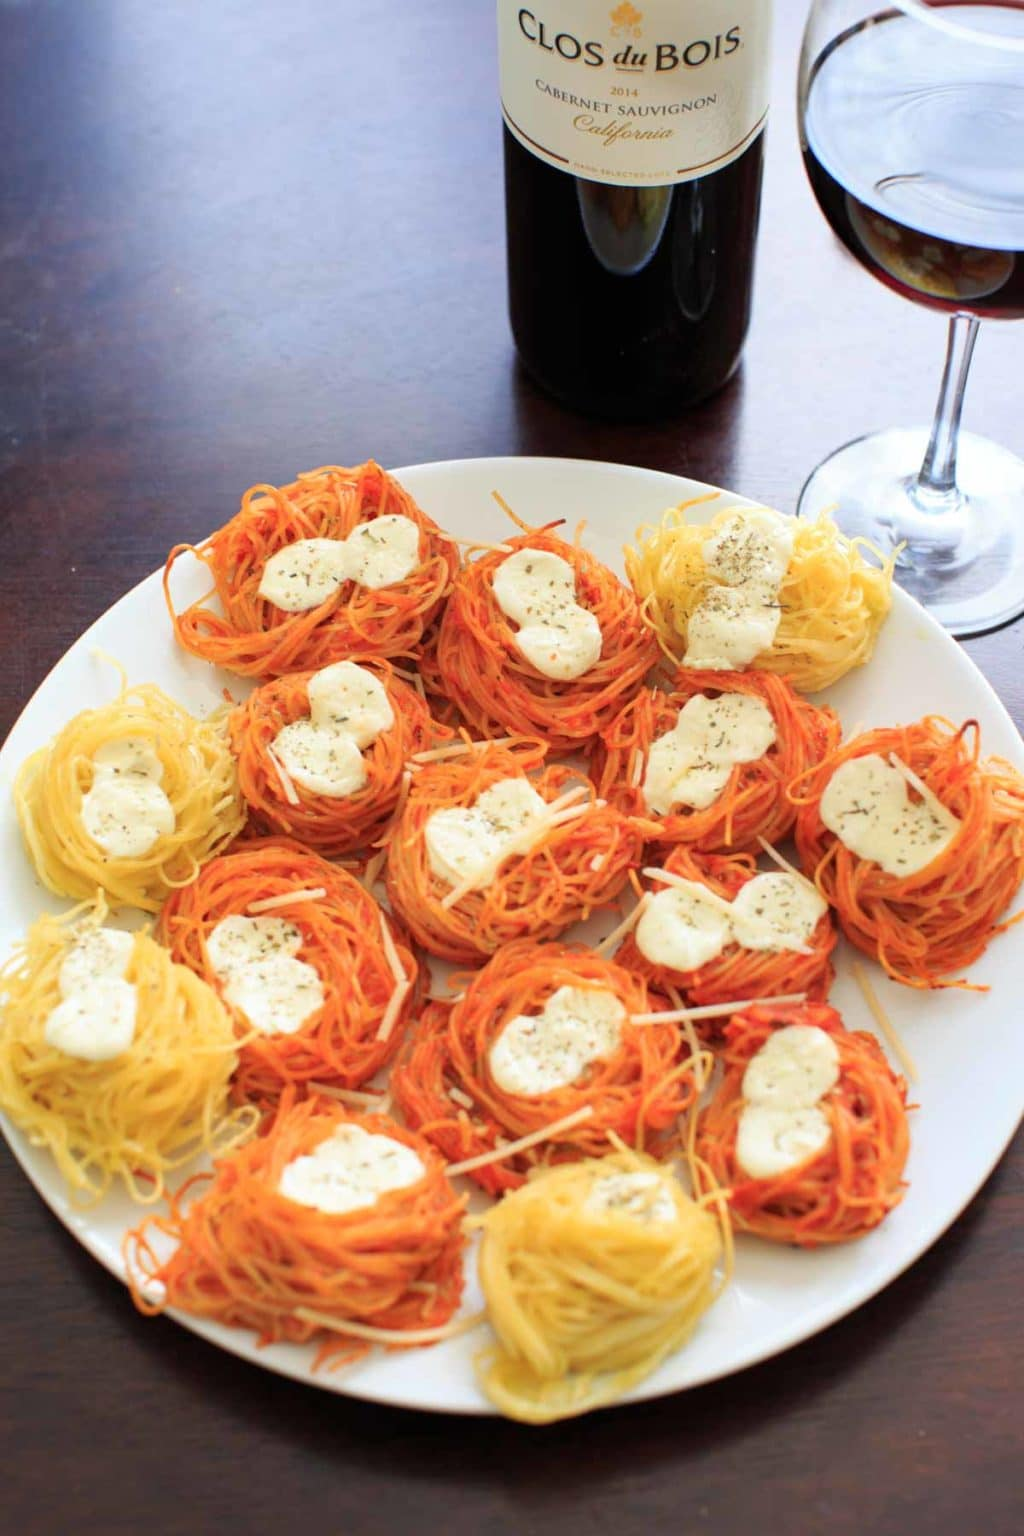 Simple Baked Spaghetti Nests - Barilla Angel Hair Pasta paired with Clos du Bois Cabernet Sauvignon red wine makes an easy and elegant dinner for entertaining.